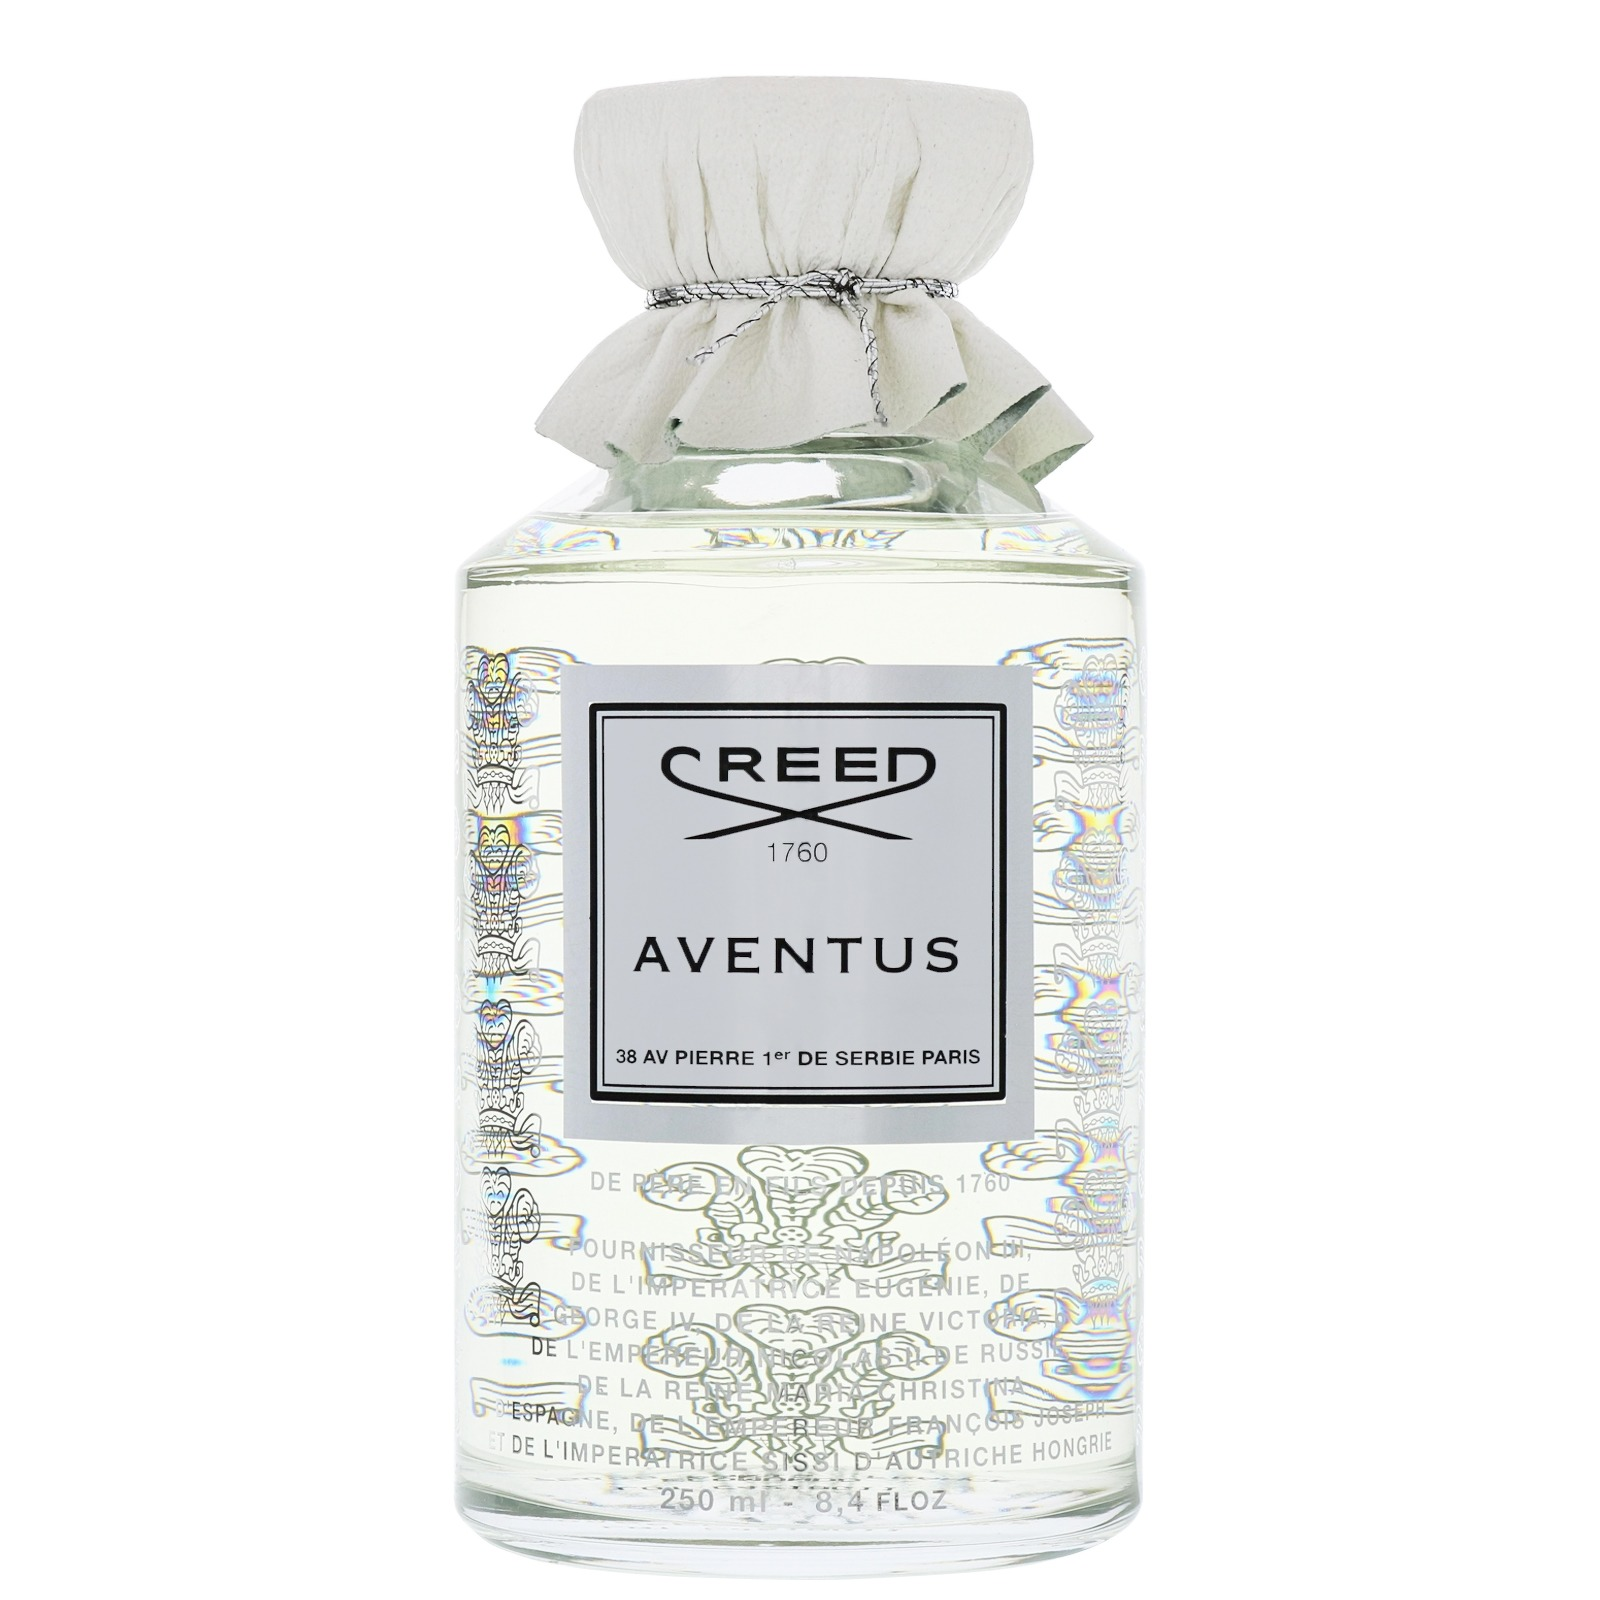 Creed Aventus Eau de Parfum Splash